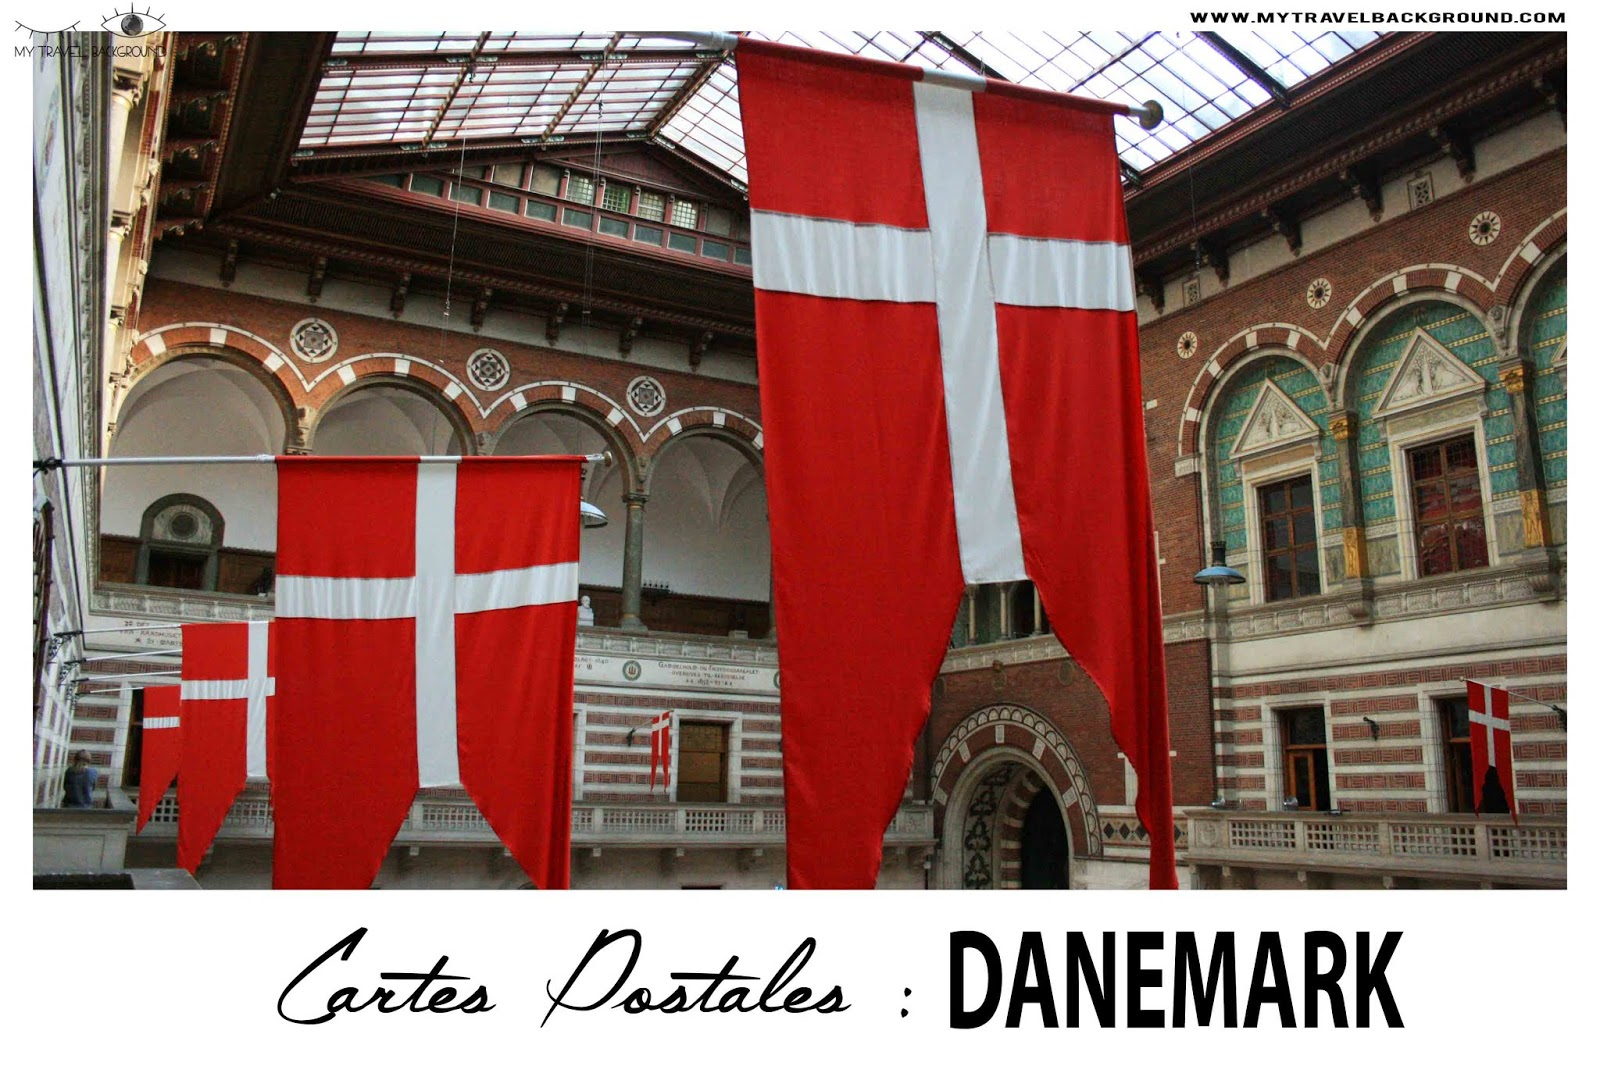 My Travel Background : carte postale du Danemark